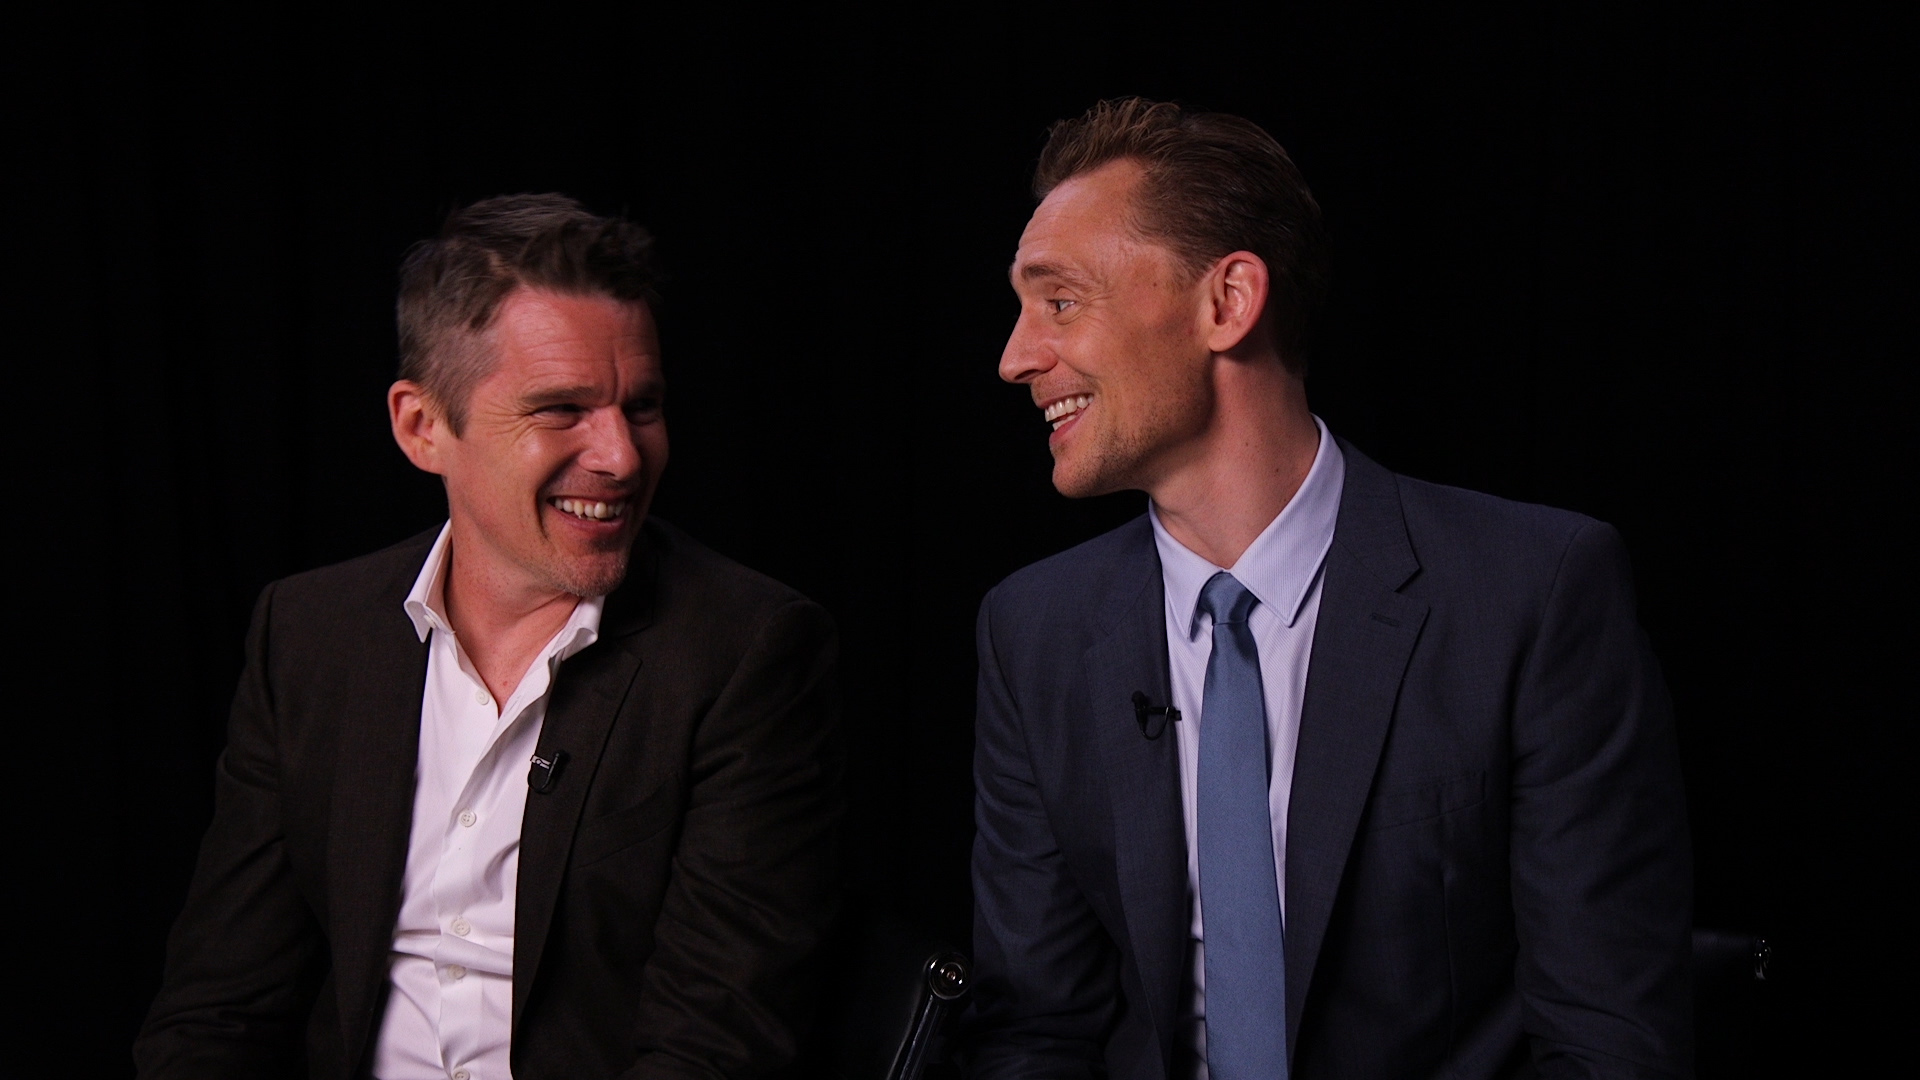 Tom Hiddleston and Ethan Hawke video still